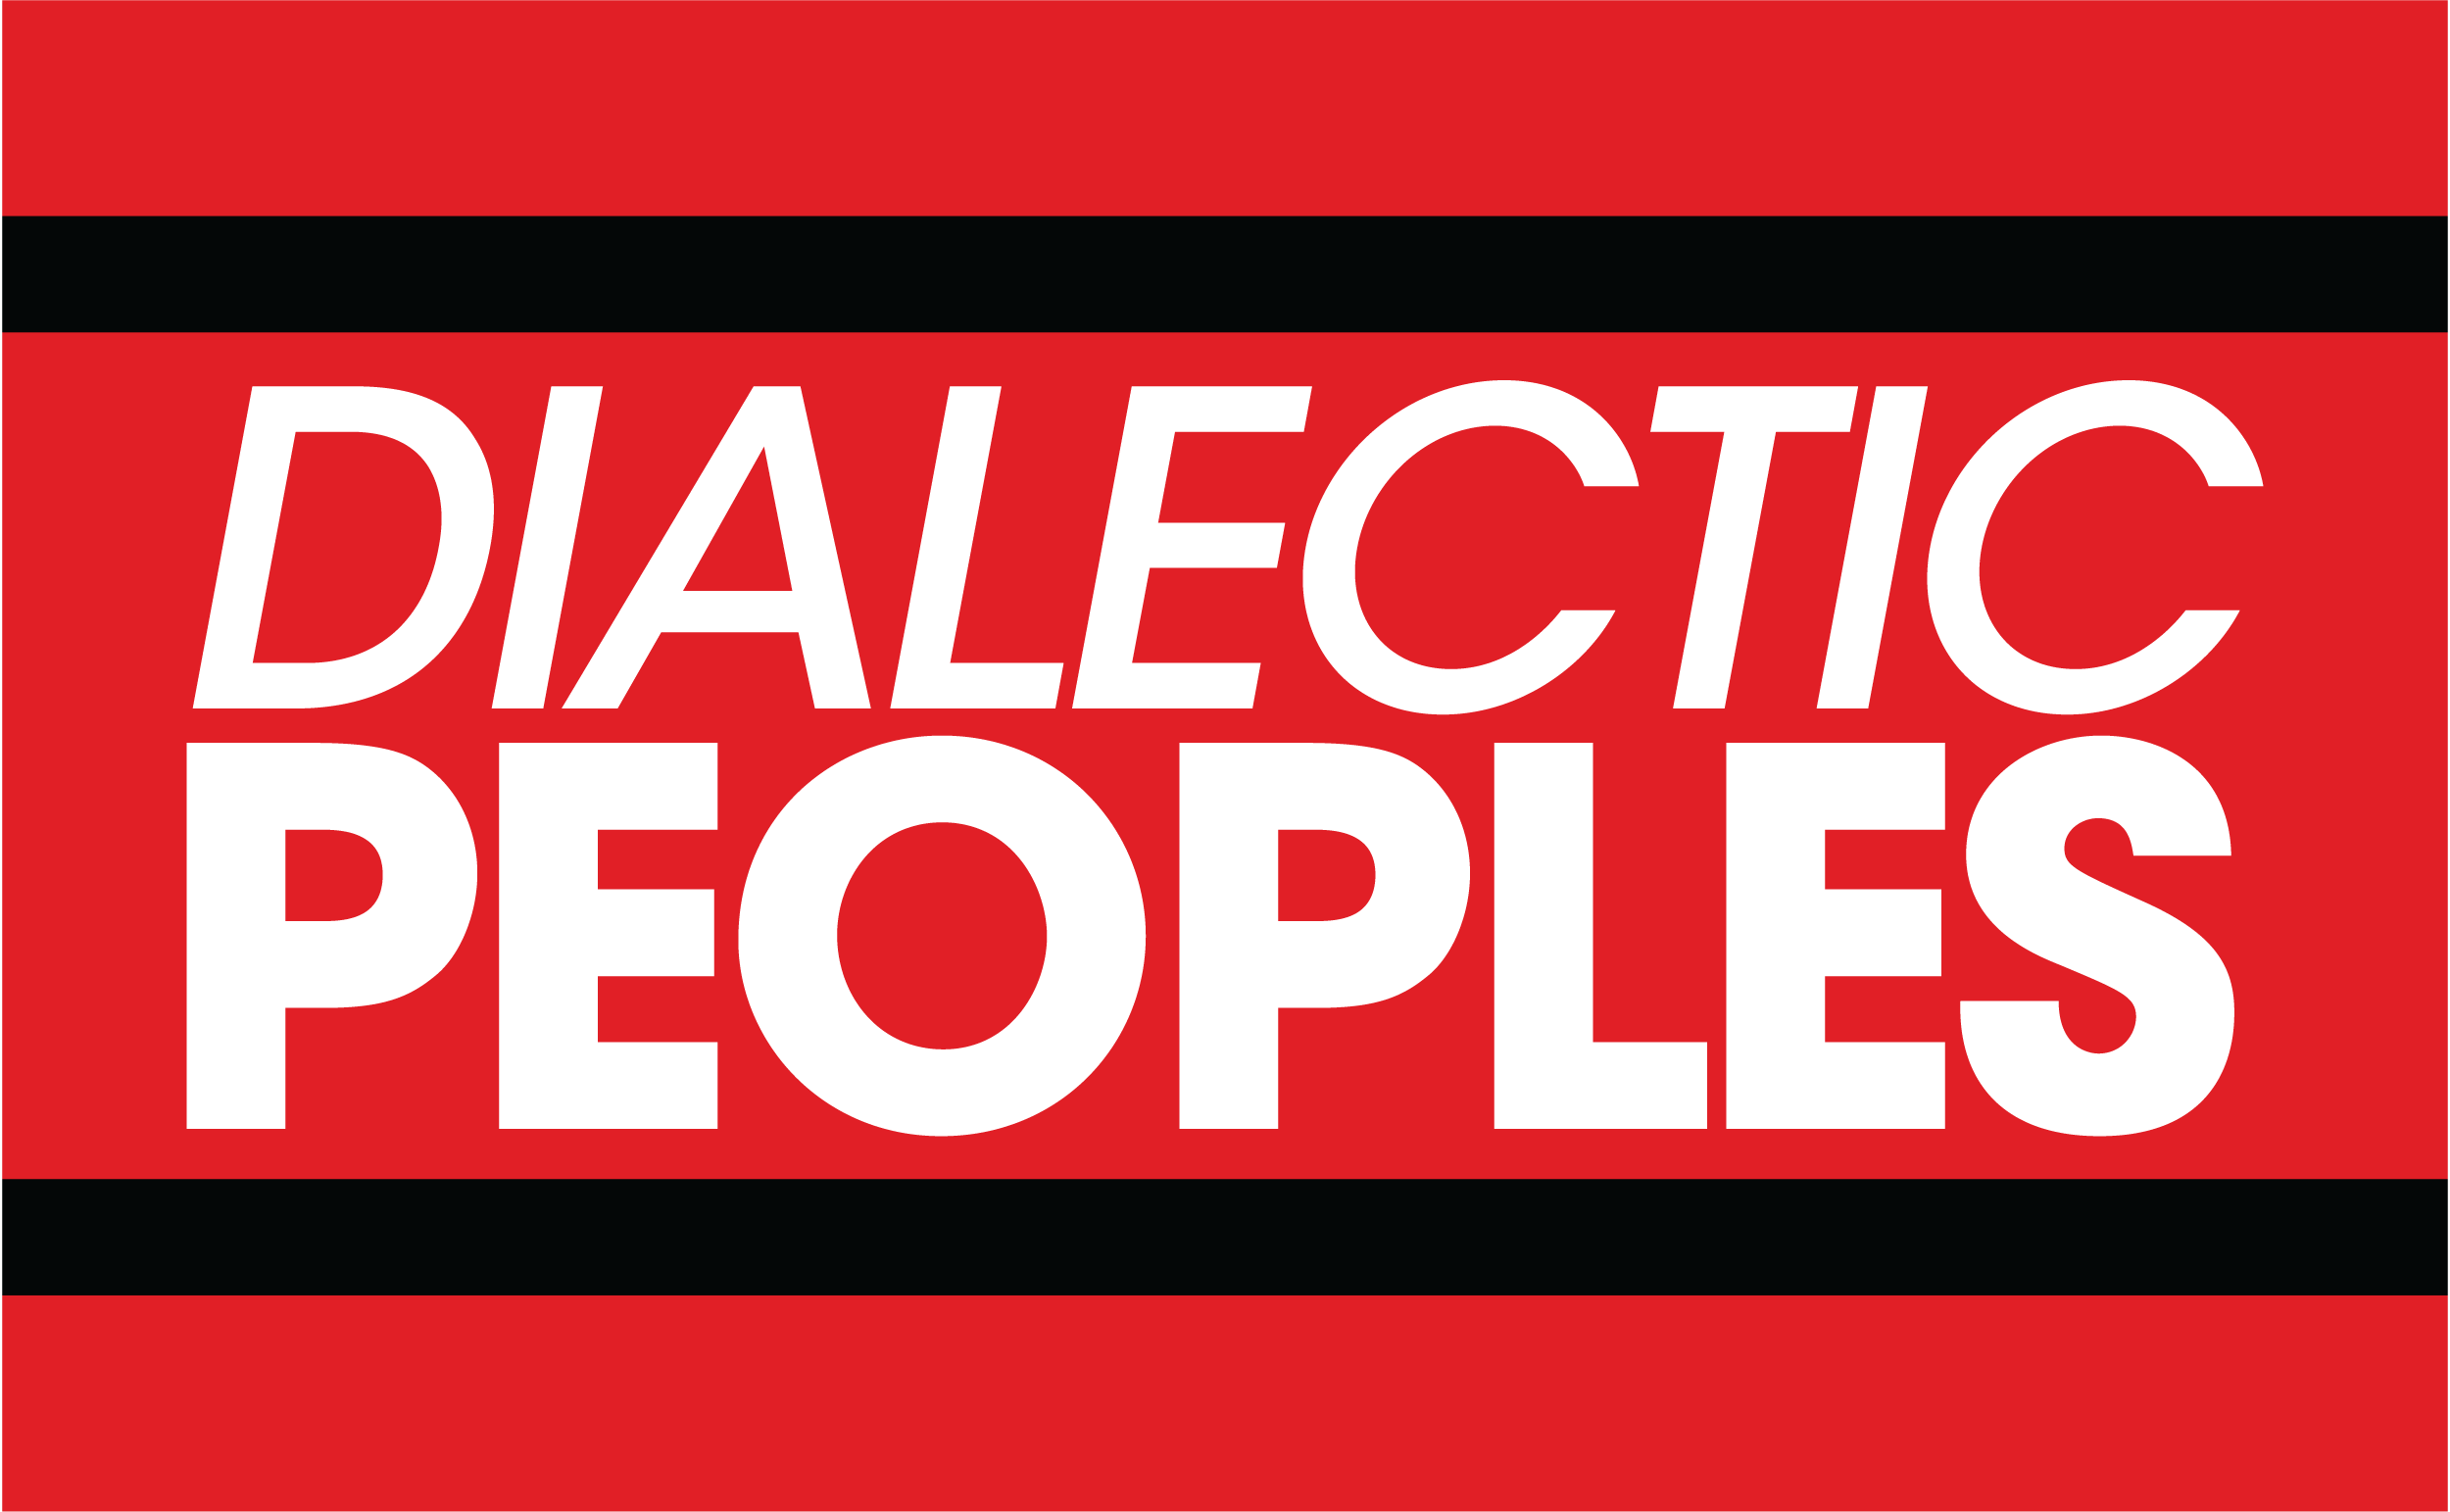 Dialectic Peoples